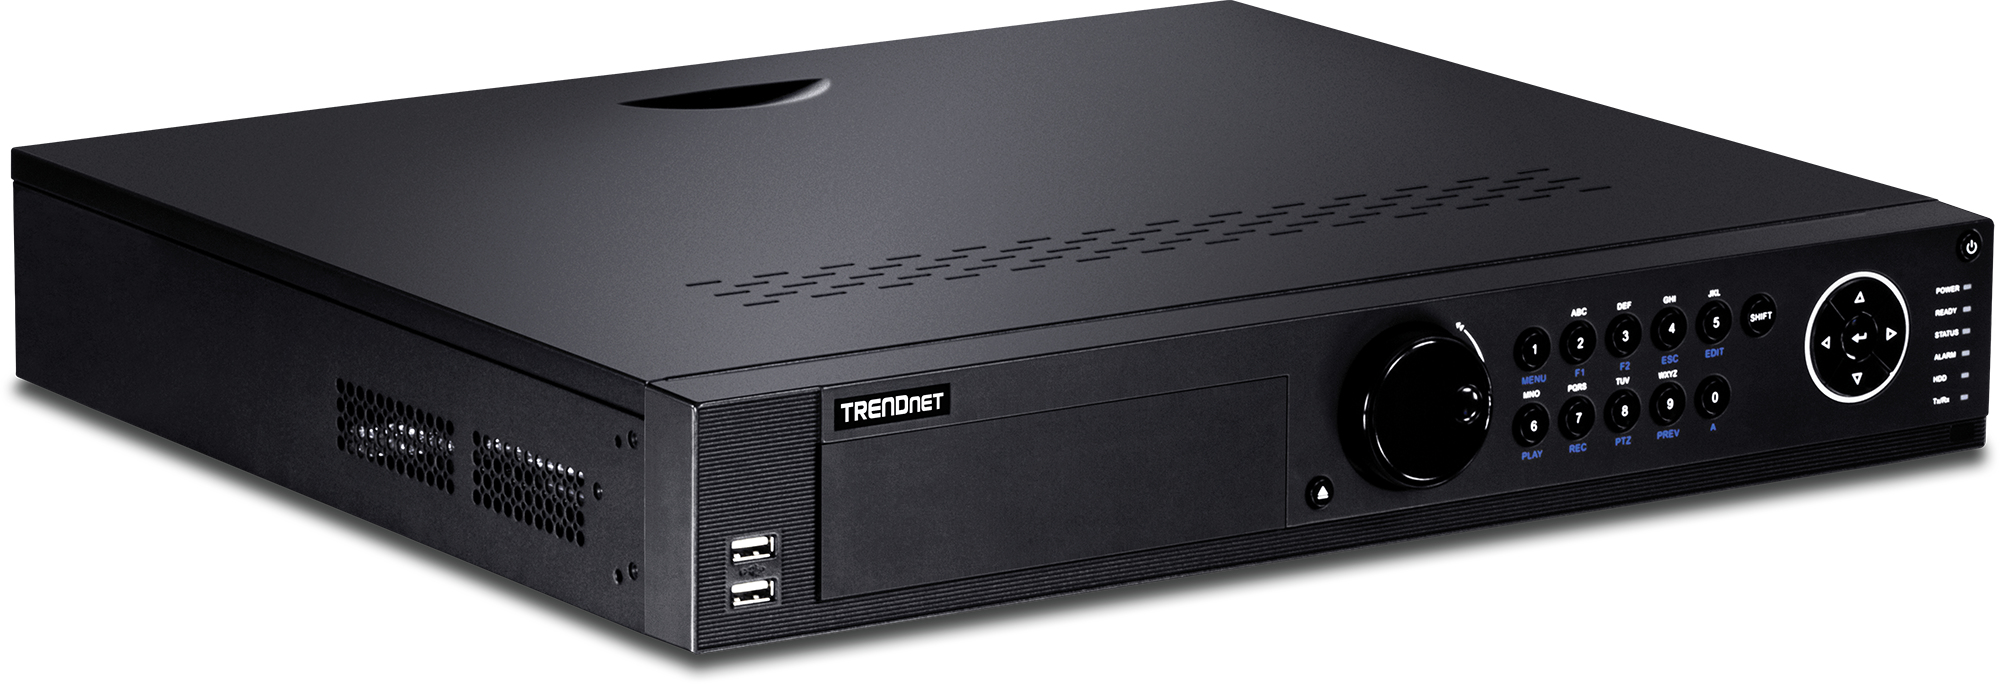 Trendnet TV-NVR2432D4 network video recorder Black